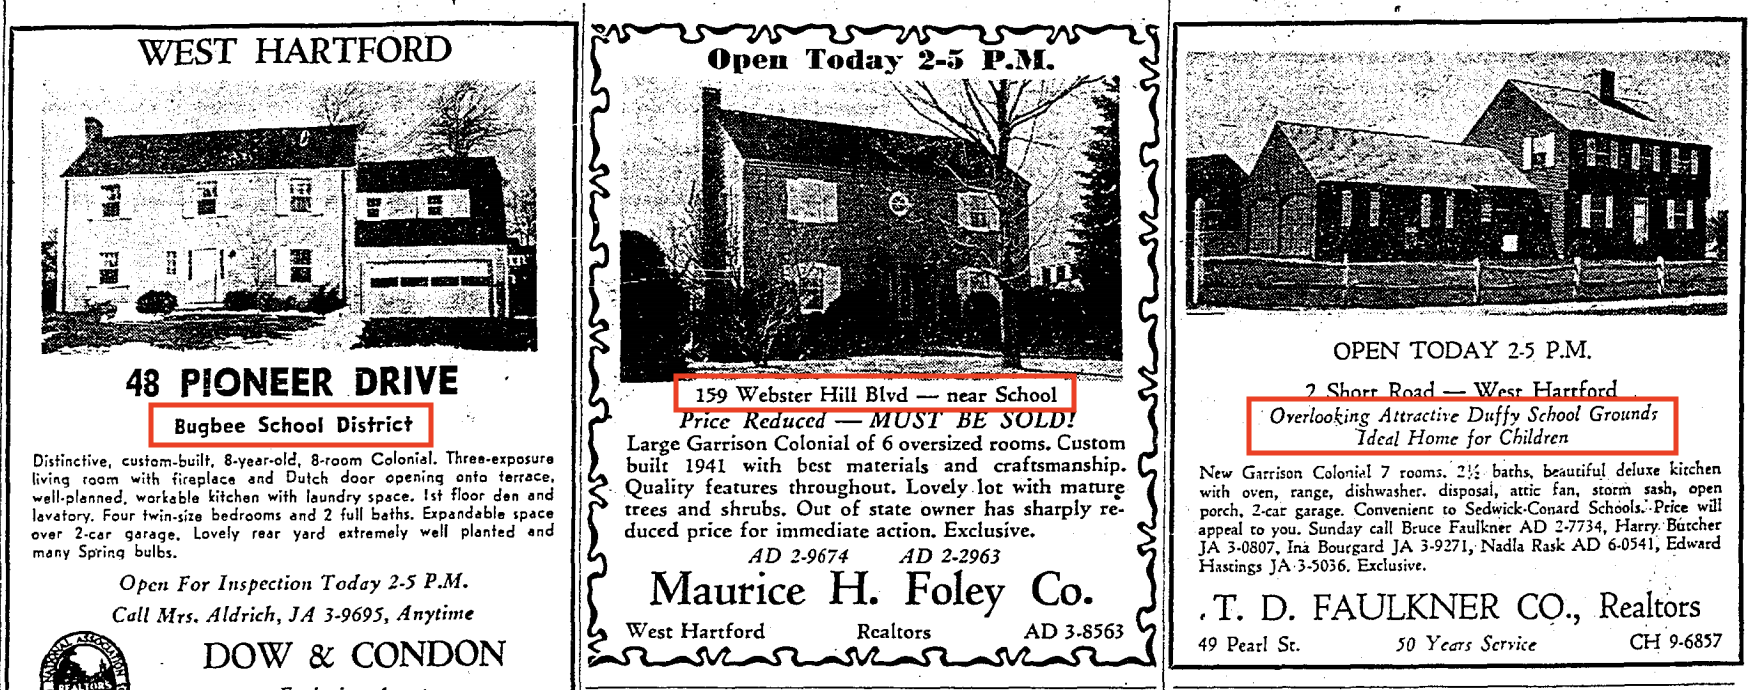 Three West Hartford private real estate ads in 1960, with public schools highlighted in red. Copyrighted by the Hartford Courant, reprinted here under Fair Use guidelines.142